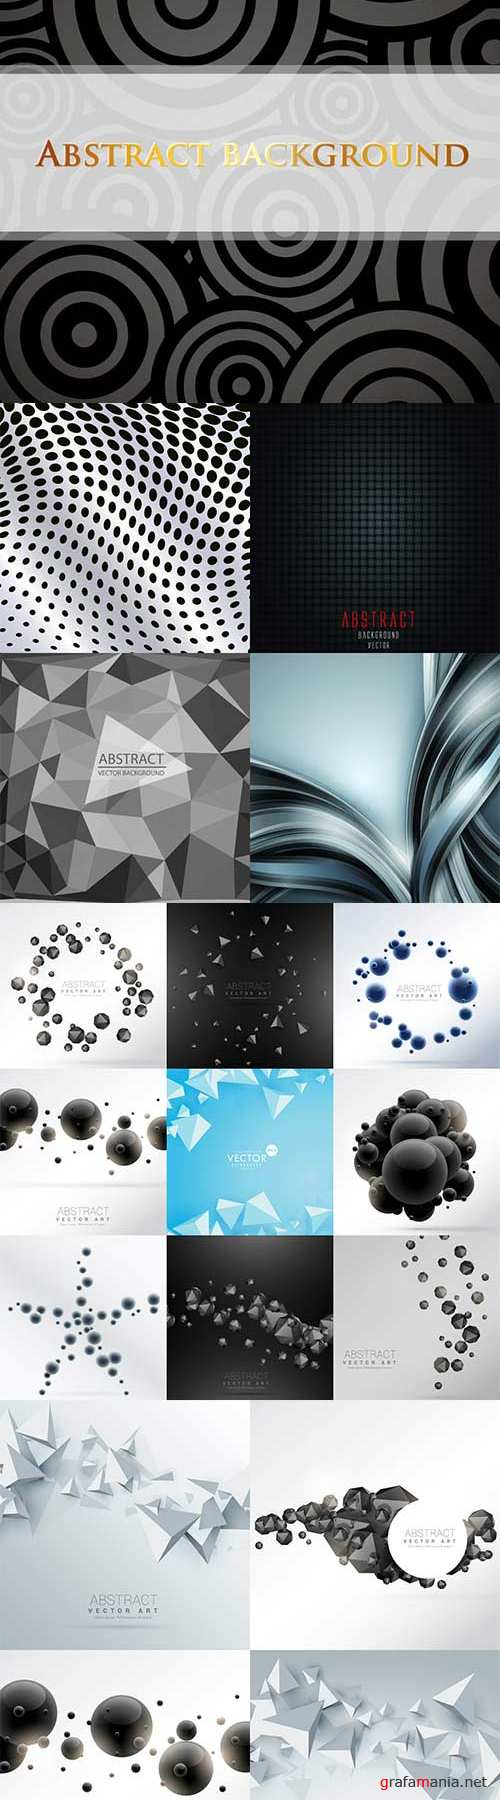 Bright colorful abstract backgrounds vector - 82